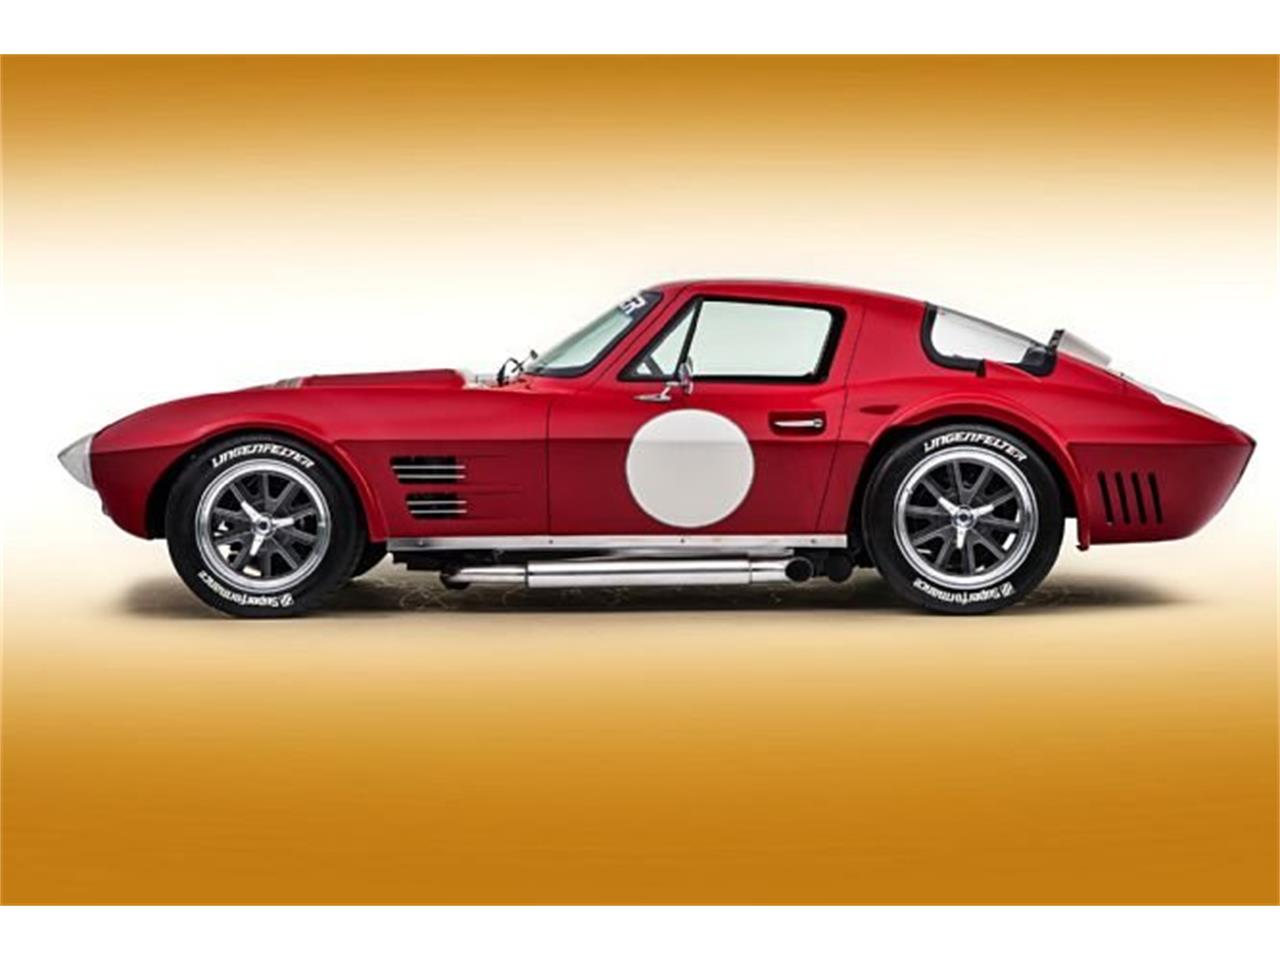 1963 Superformance Corvette Grand Sport (CC-1197363) for sale in Irvine, California